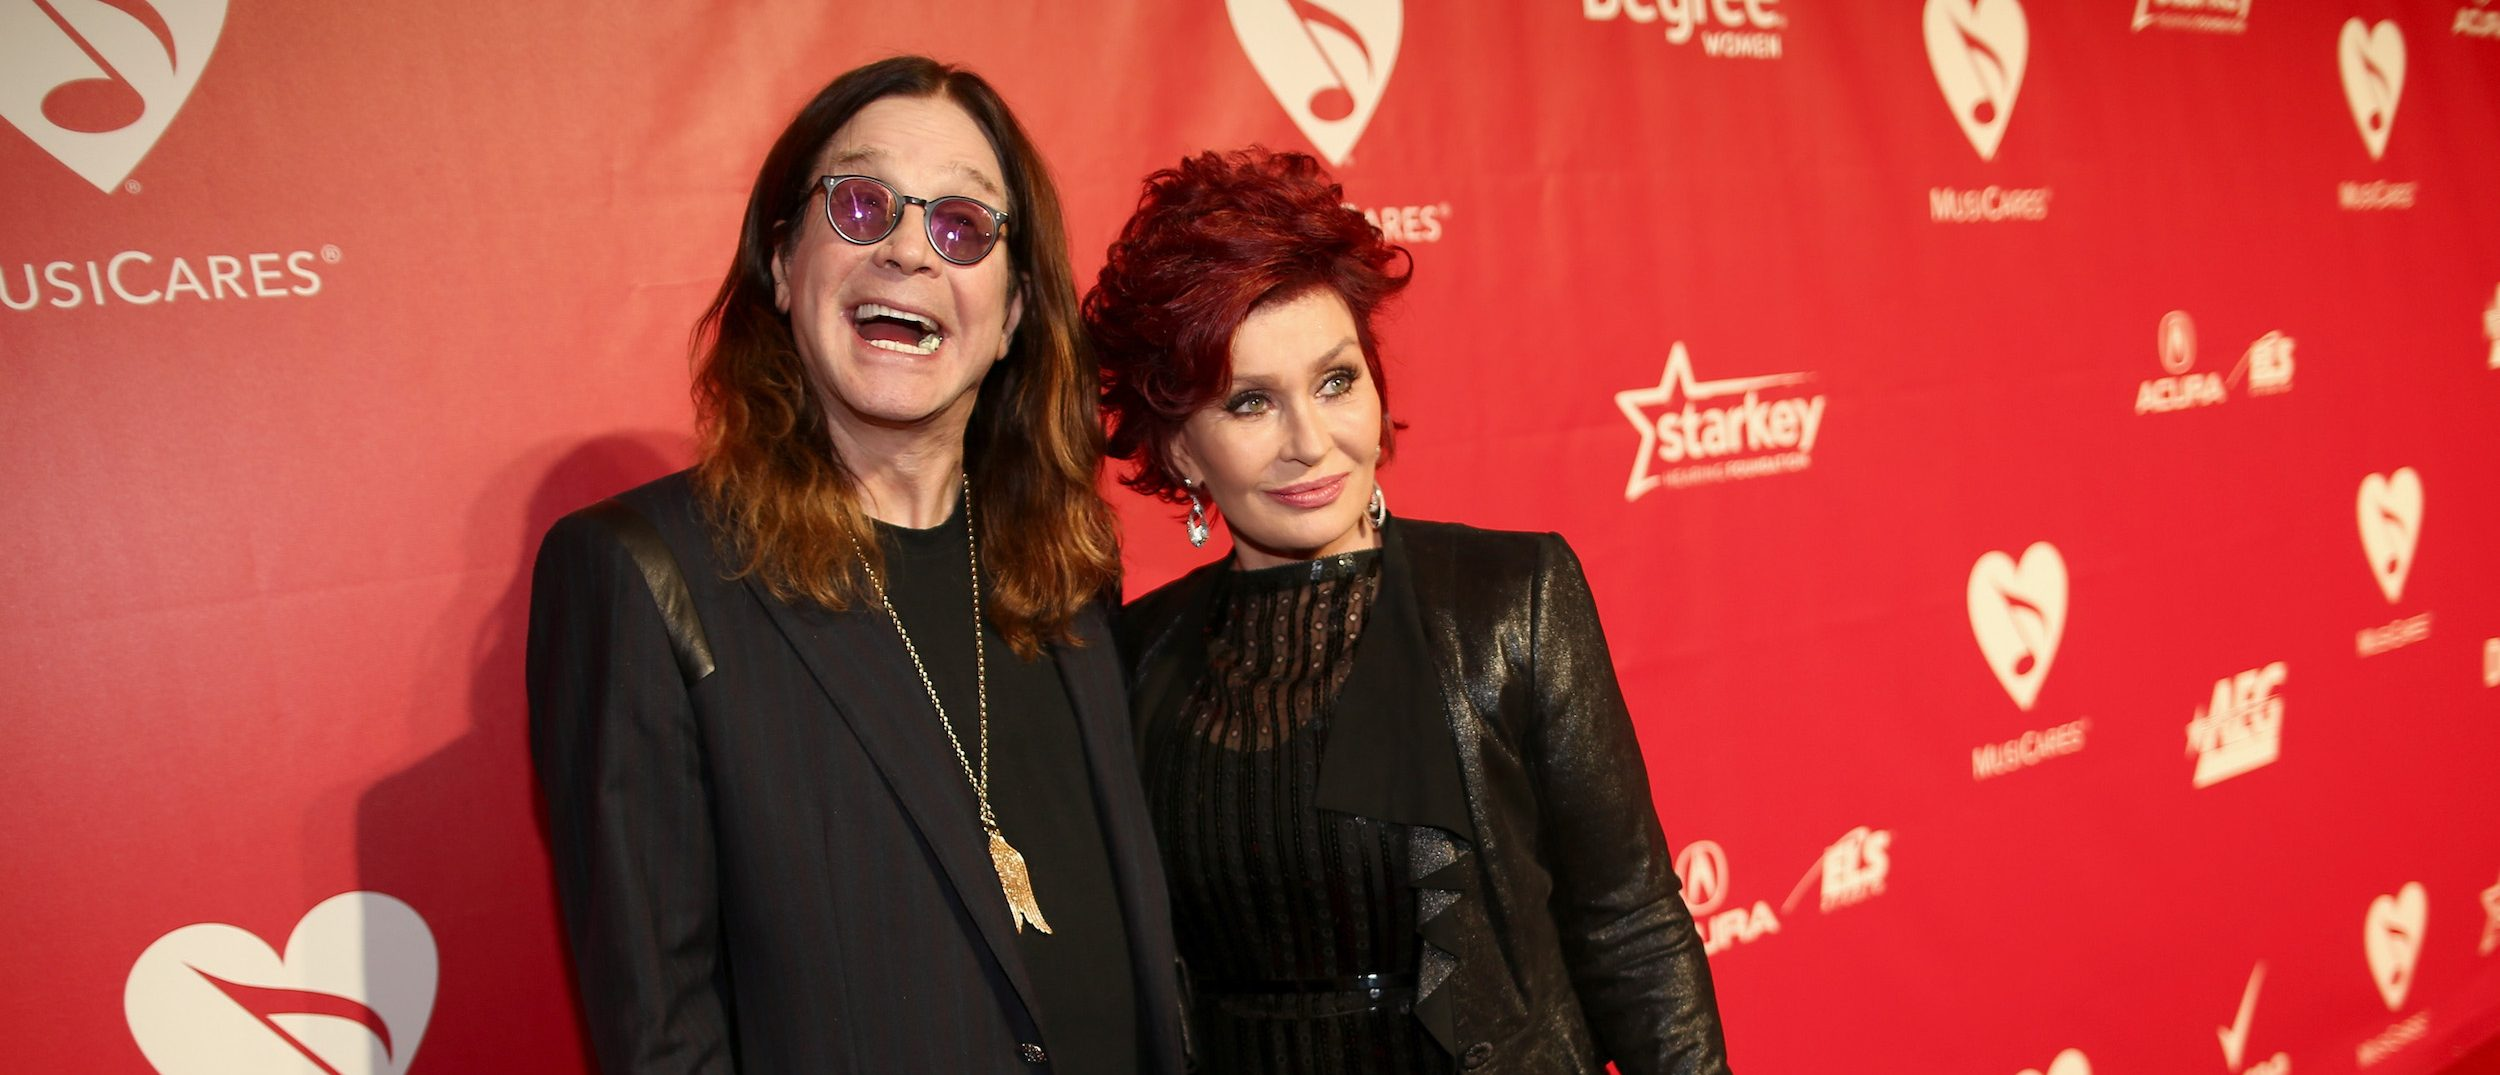 Sharon Osbourne Talks About Relationship With Ozzy | The Daily Caller